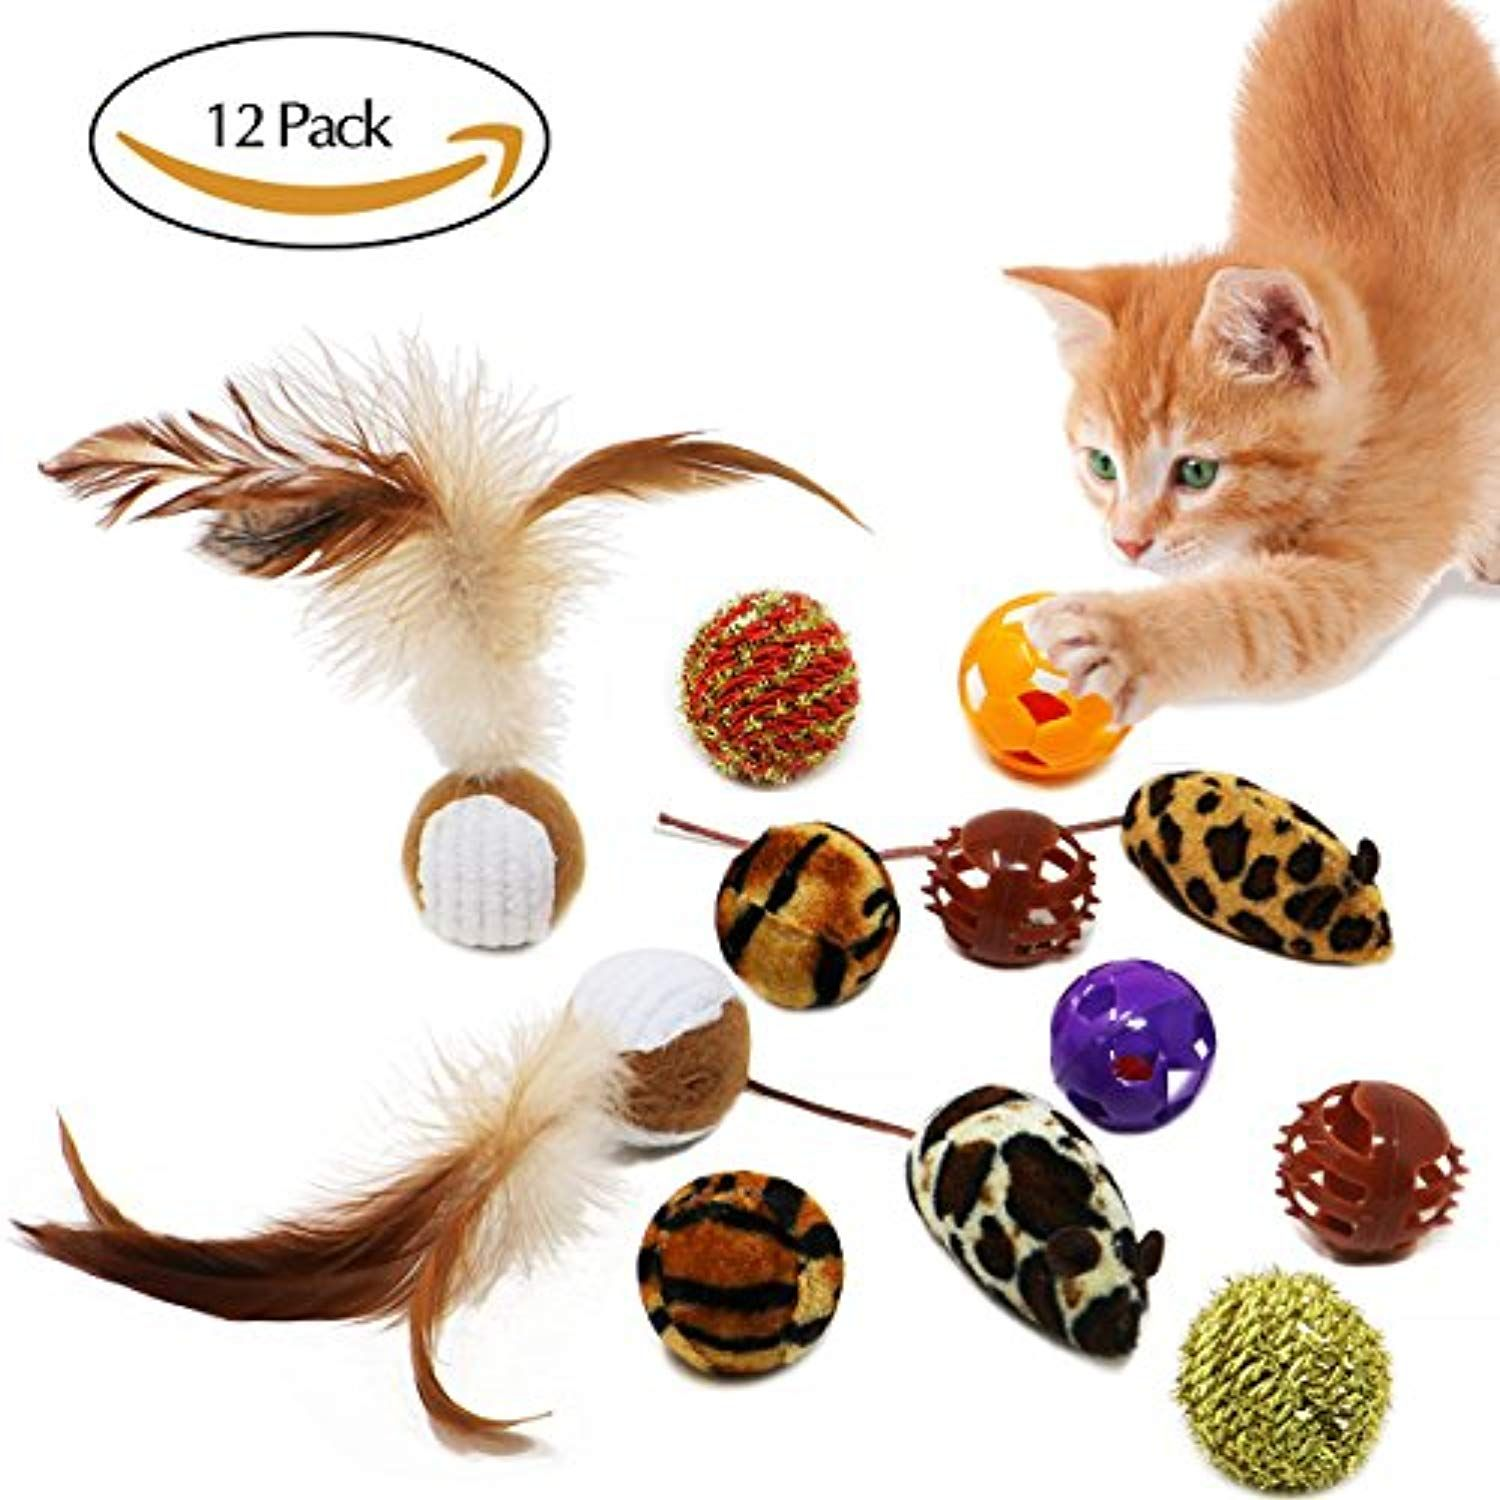 Bascolor Cat Toys Balls Interactive 12 Pack Feather Squeaky Bell Mice Catnip For Cat Kittens Click Image For Mo Cat Toys Cat Accessories Cat Ball